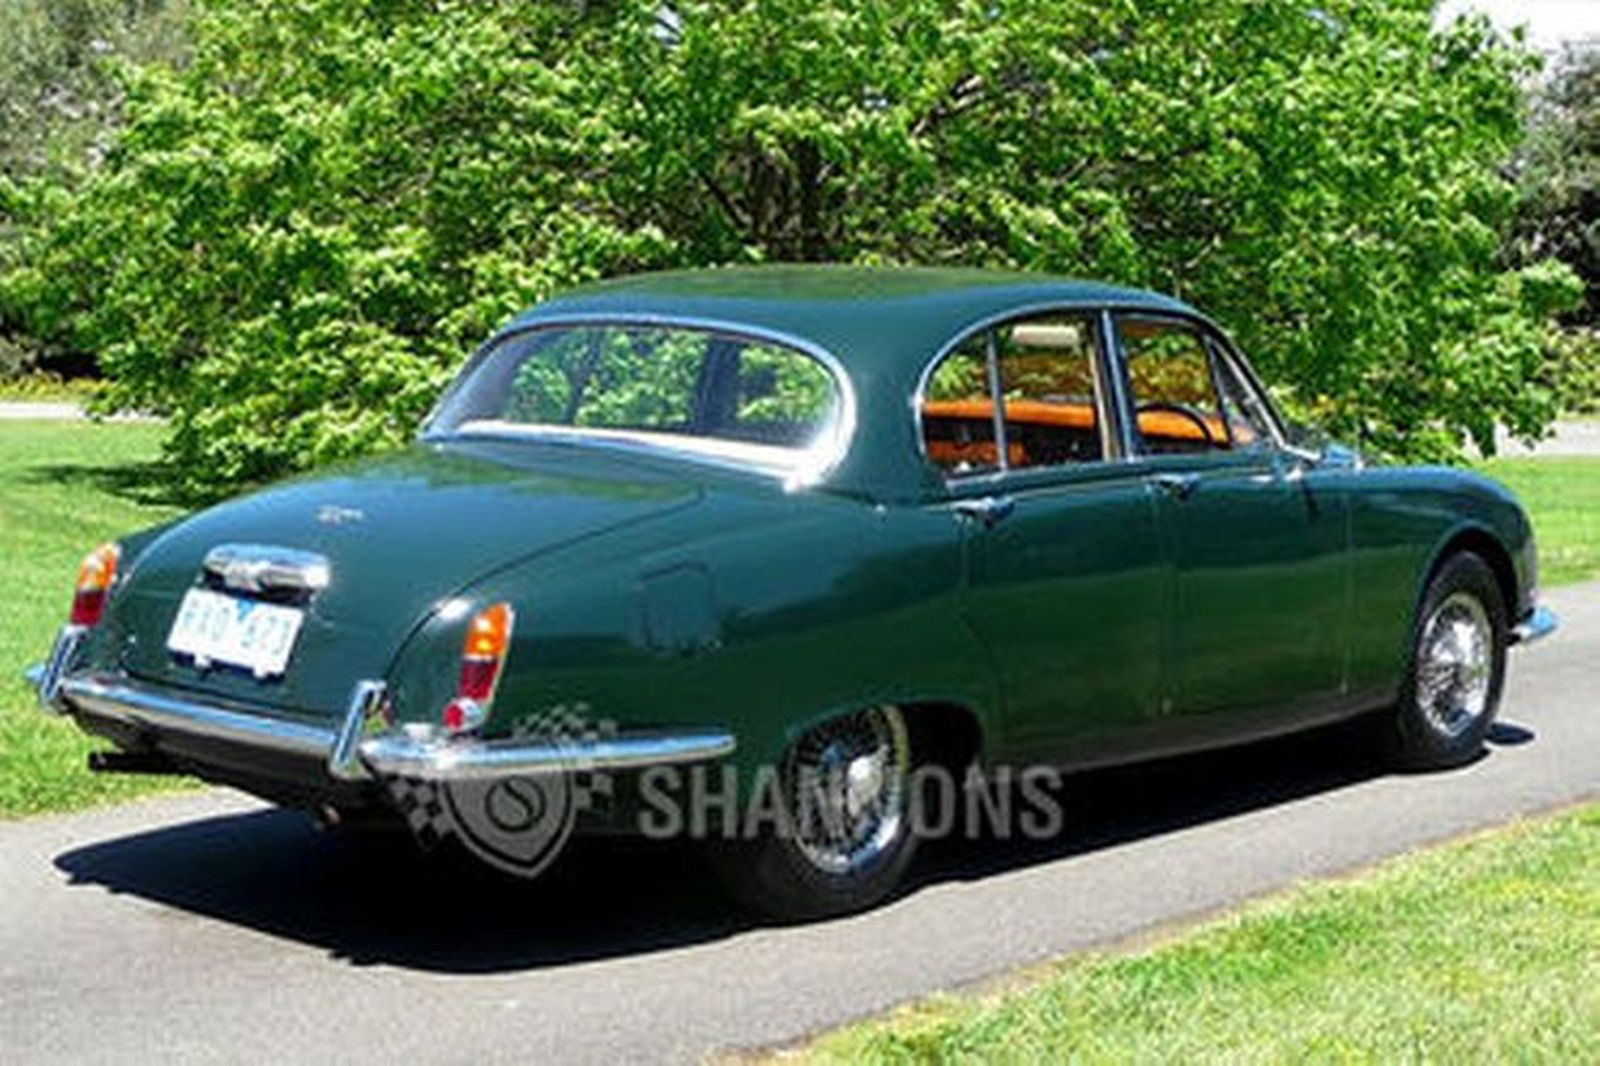 sold jaguar s type 3 8 39 manual 39 saloon auctions lot 3 shannons. Black Bedroom Furniture Sets. Home Design Ideas